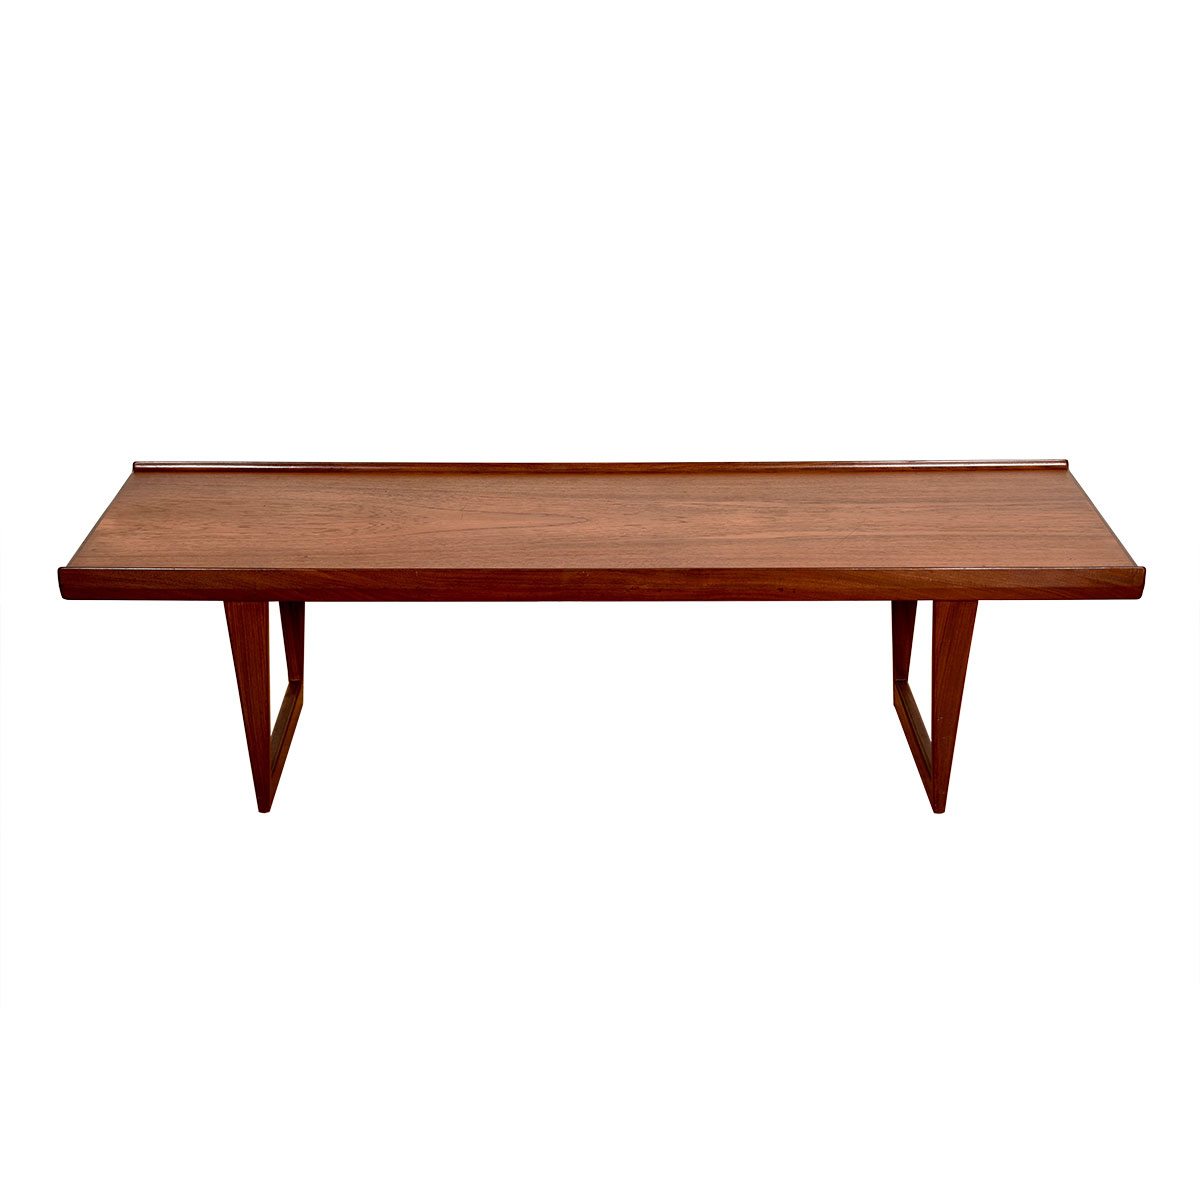 Danish Modern Teak Bench / Coffee Table by Lovig